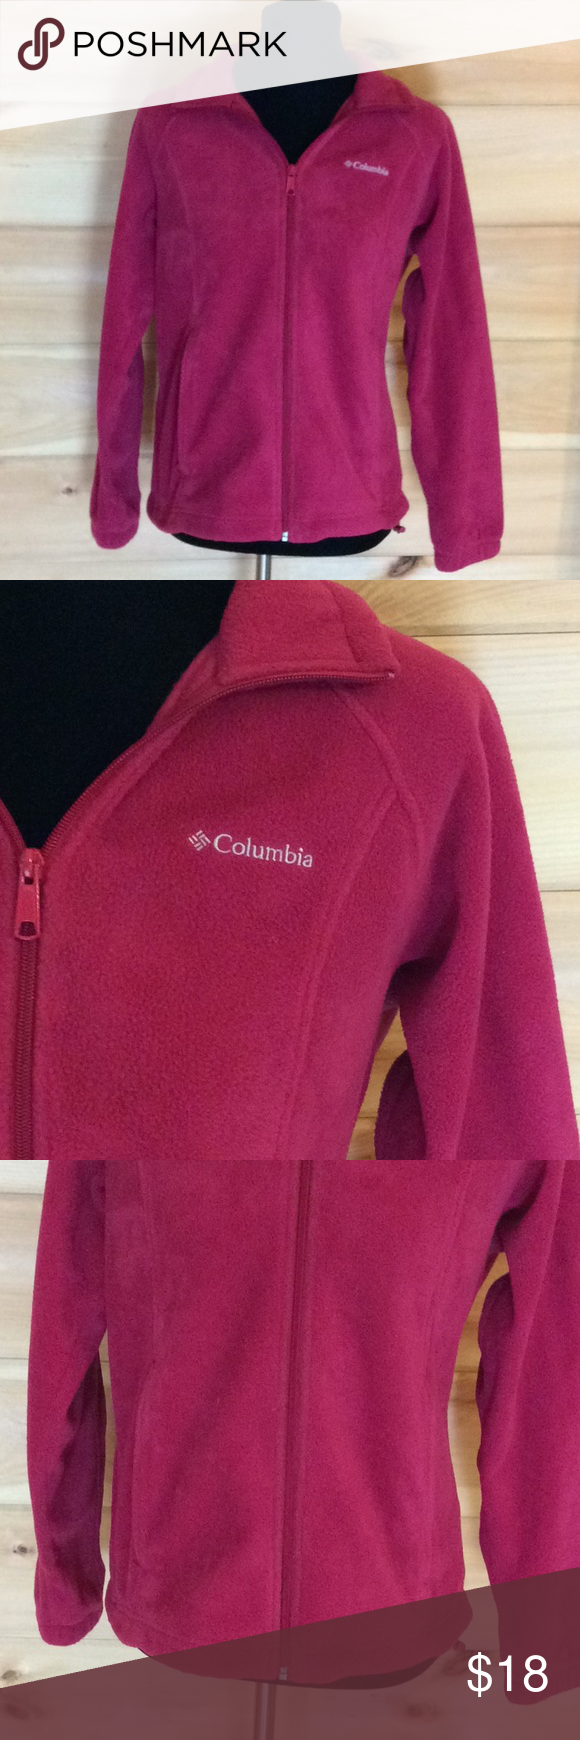 Columbia hot pink fleece zip up jacket petite m in my posh